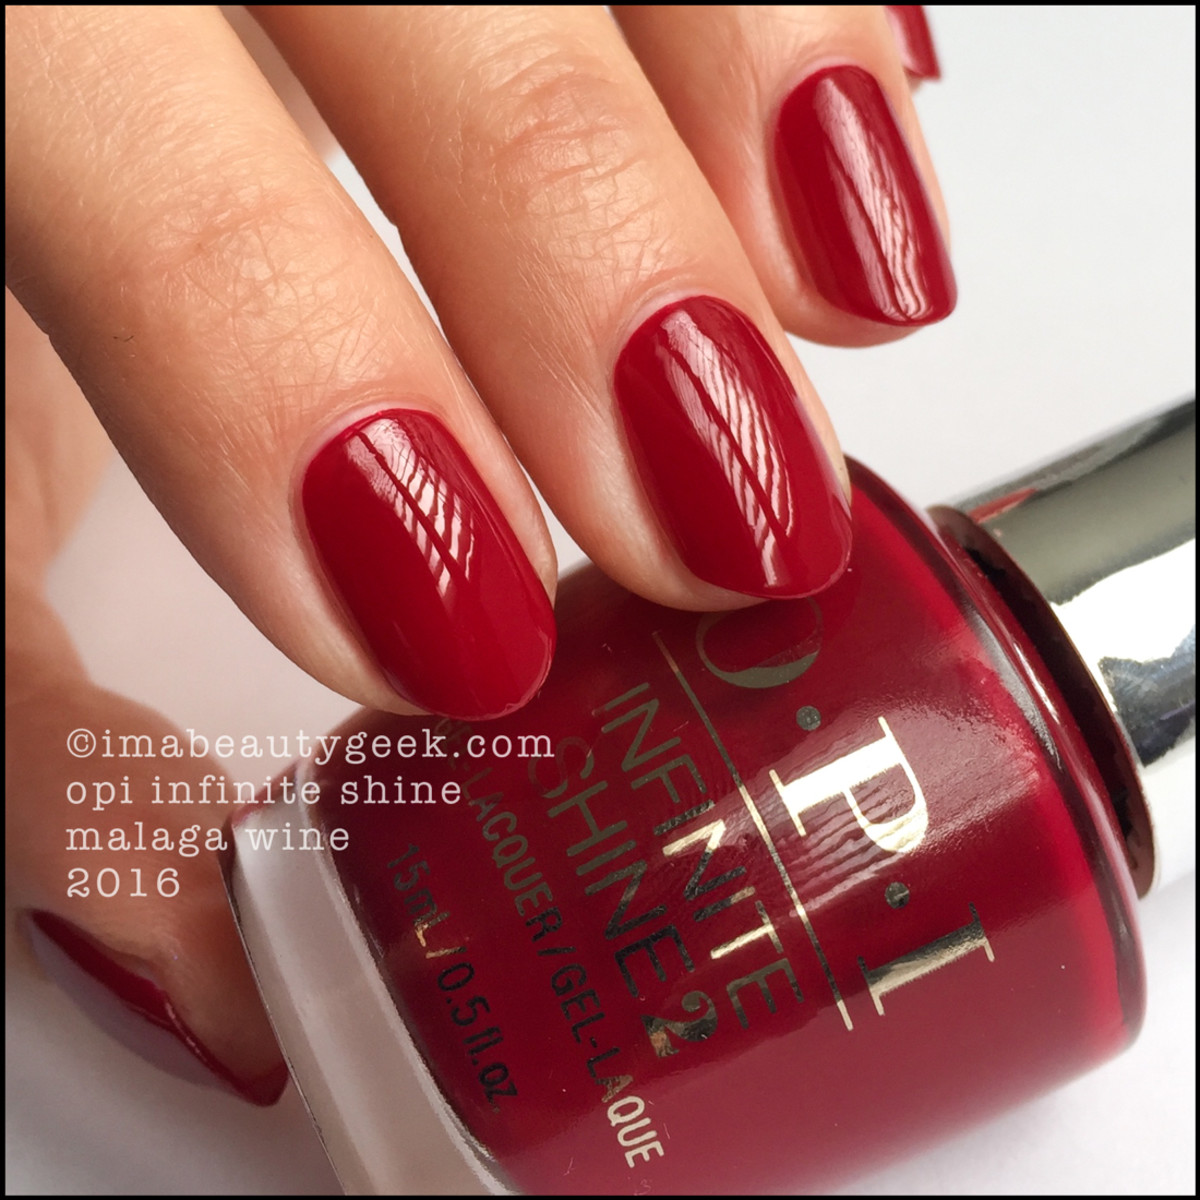 OPI Infnite Shine Malaga Wine_OPI Infinite Shine Iconic Collection 2016